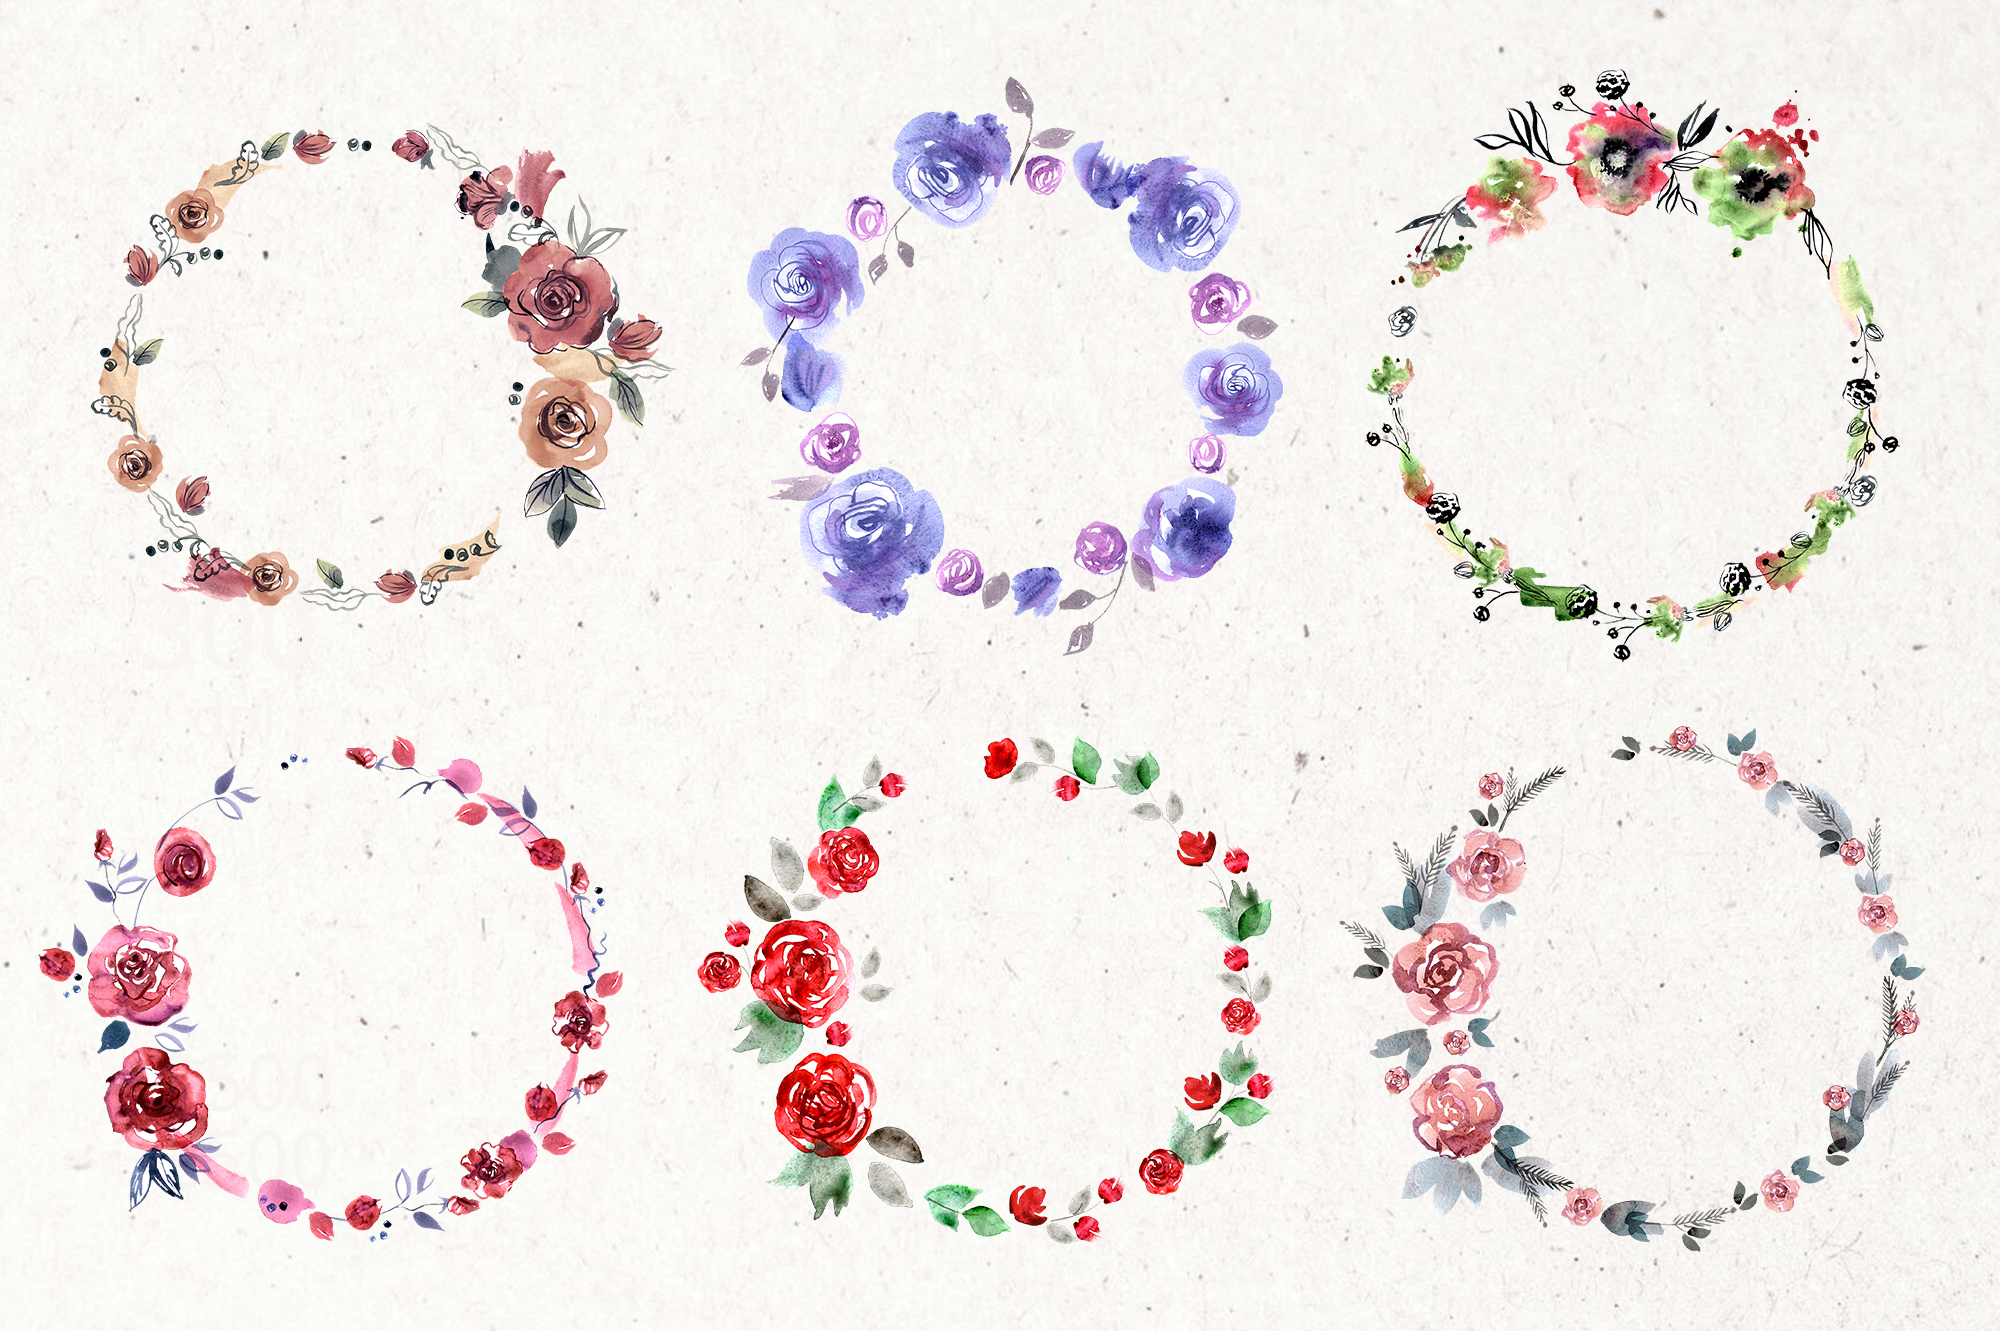 30 Watercolor Floral Wreaths example image 5